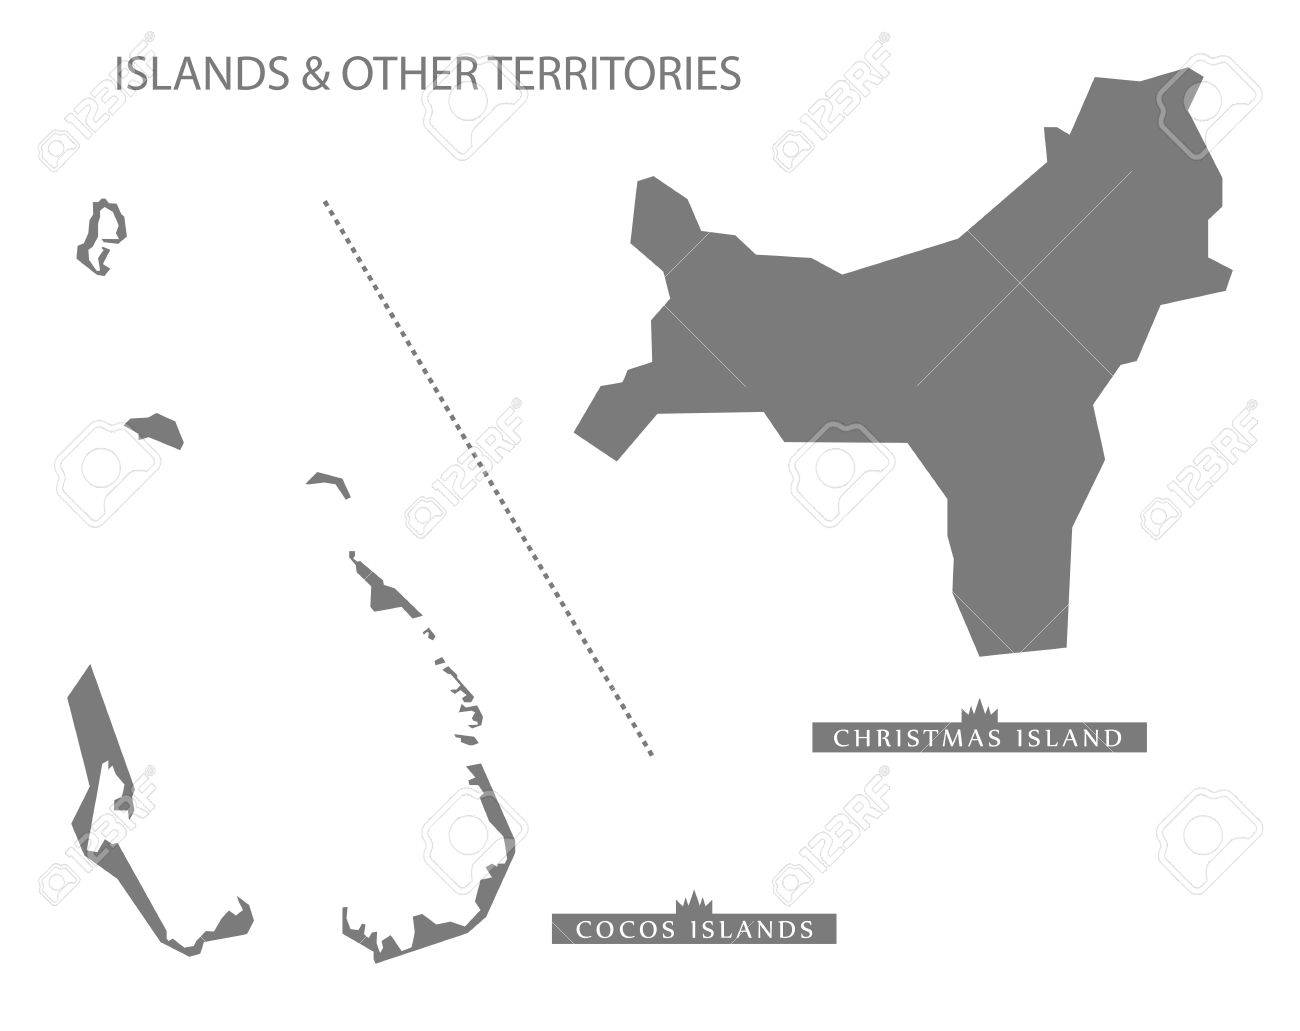 Australia Map Grey.Islands And Other Territories Australia Map Grey Royalty Free